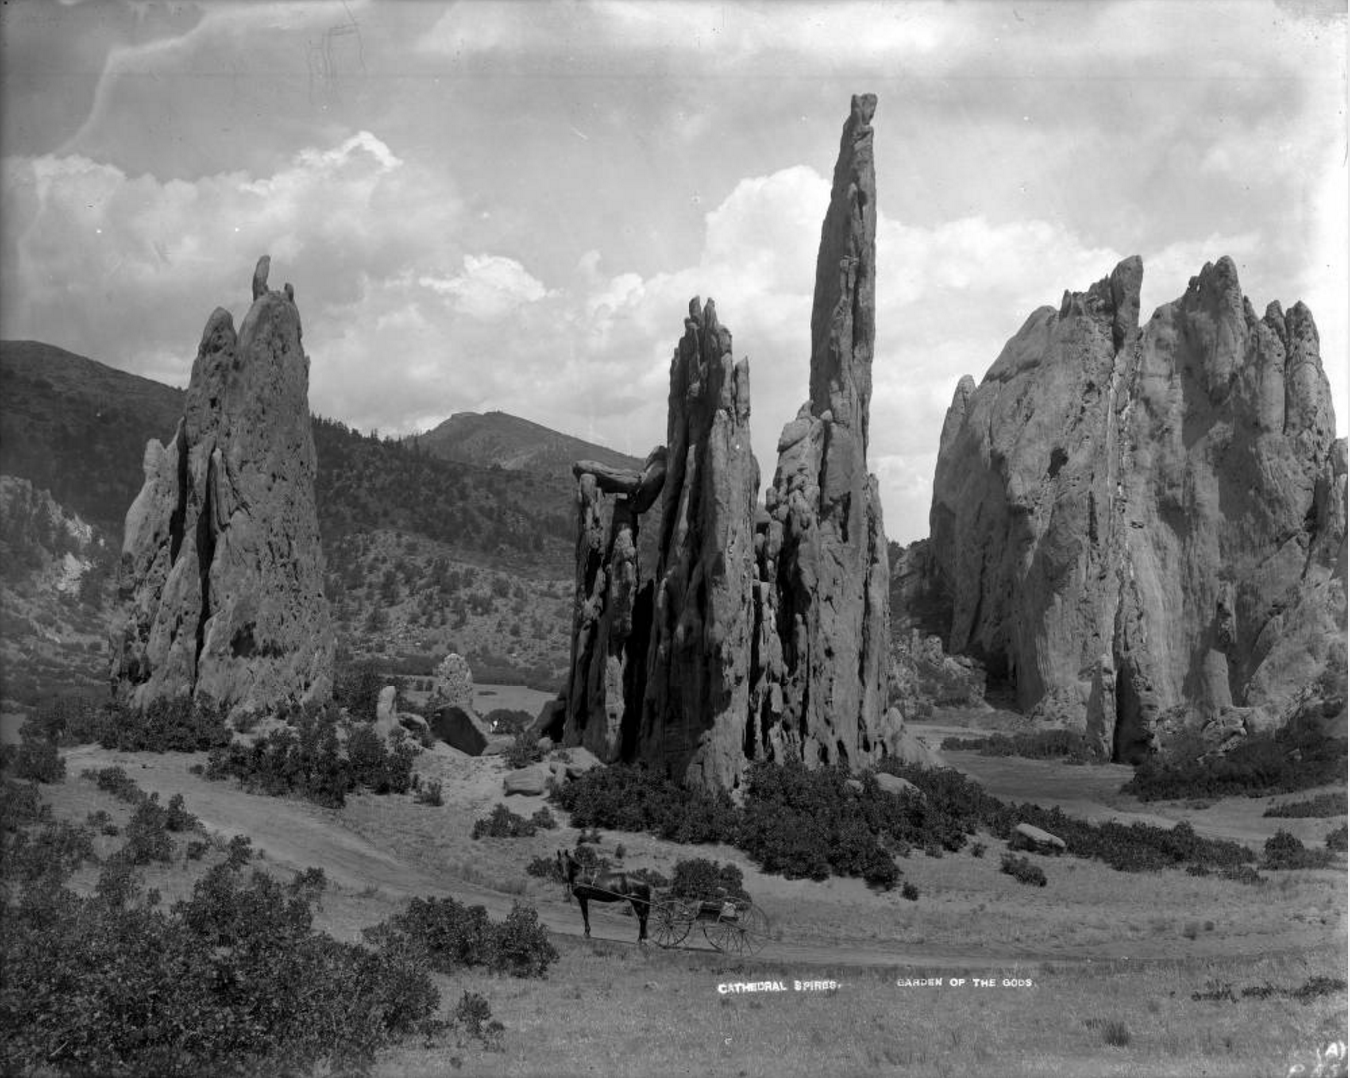 Image titleA horse and buggy on a trail in front of the Cathedral Spires rock formations, Garden of the Gods, Photo courtesy of Western History and Genealogy Dept., Denver Public Library